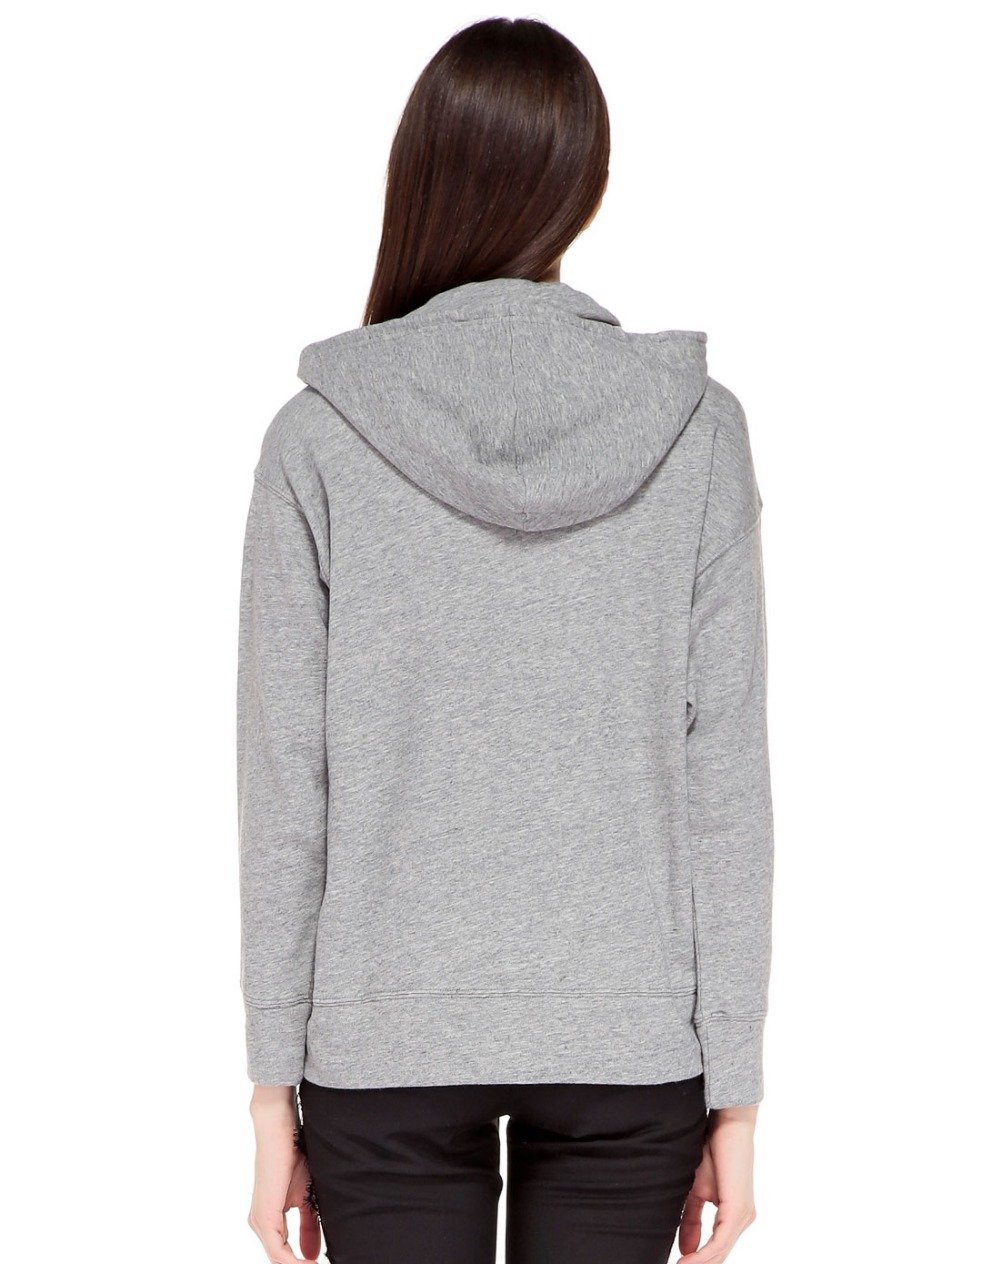 Women Cotton And Polyester Blend Gray Fleece Hoodie